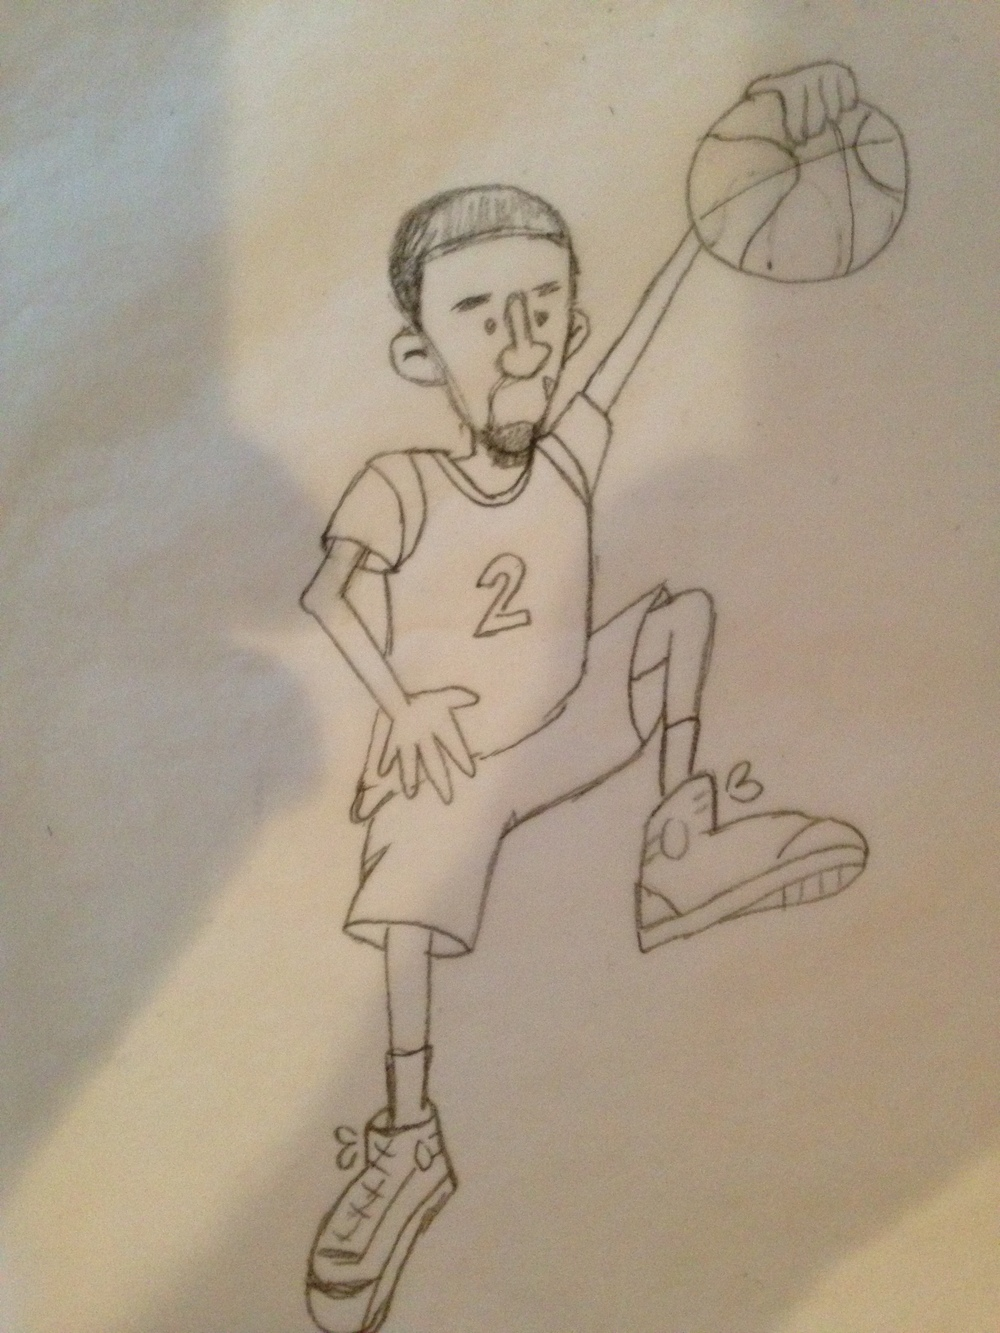 My cleaned up sketch of Russ taken with my iPhone. Awkward right hand: check. Marvin the Martian sneakers: check.